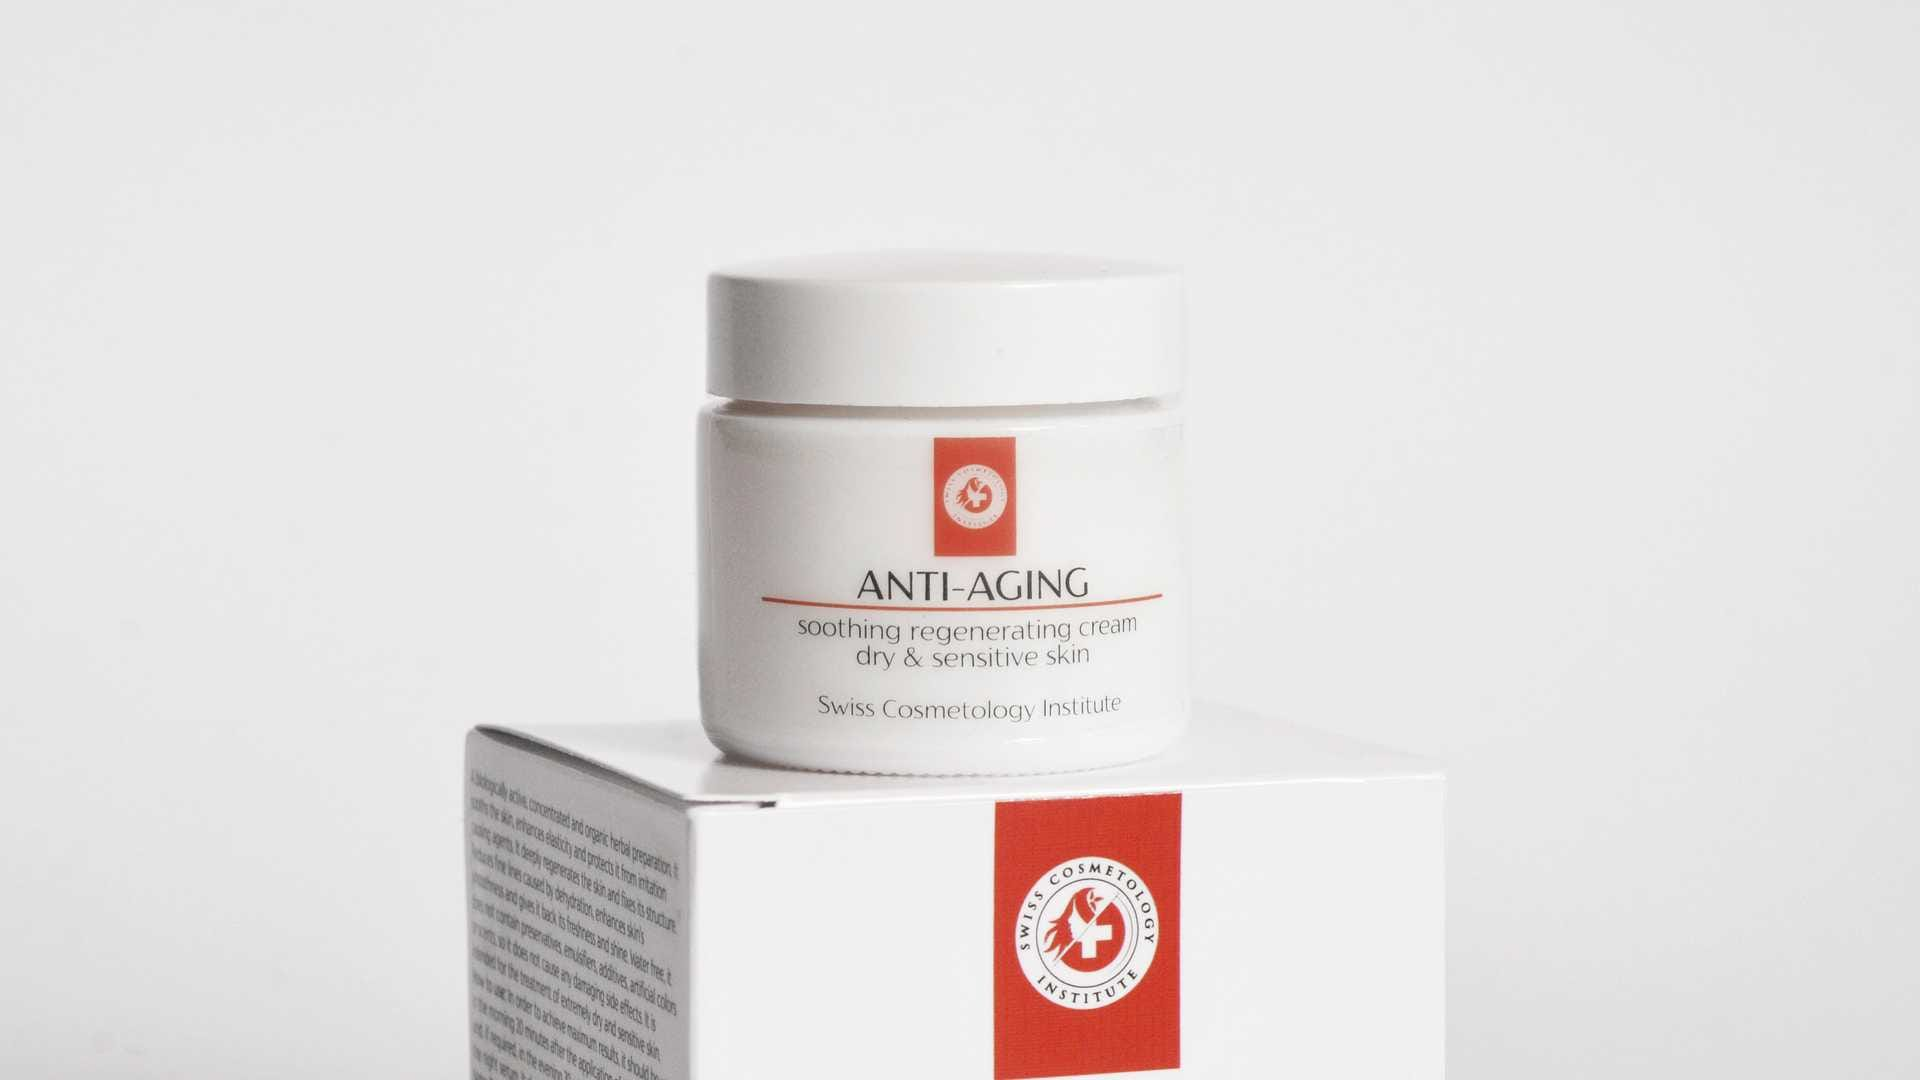 08. Soothing regenerating cream DRY & SENSITIVE SKIN